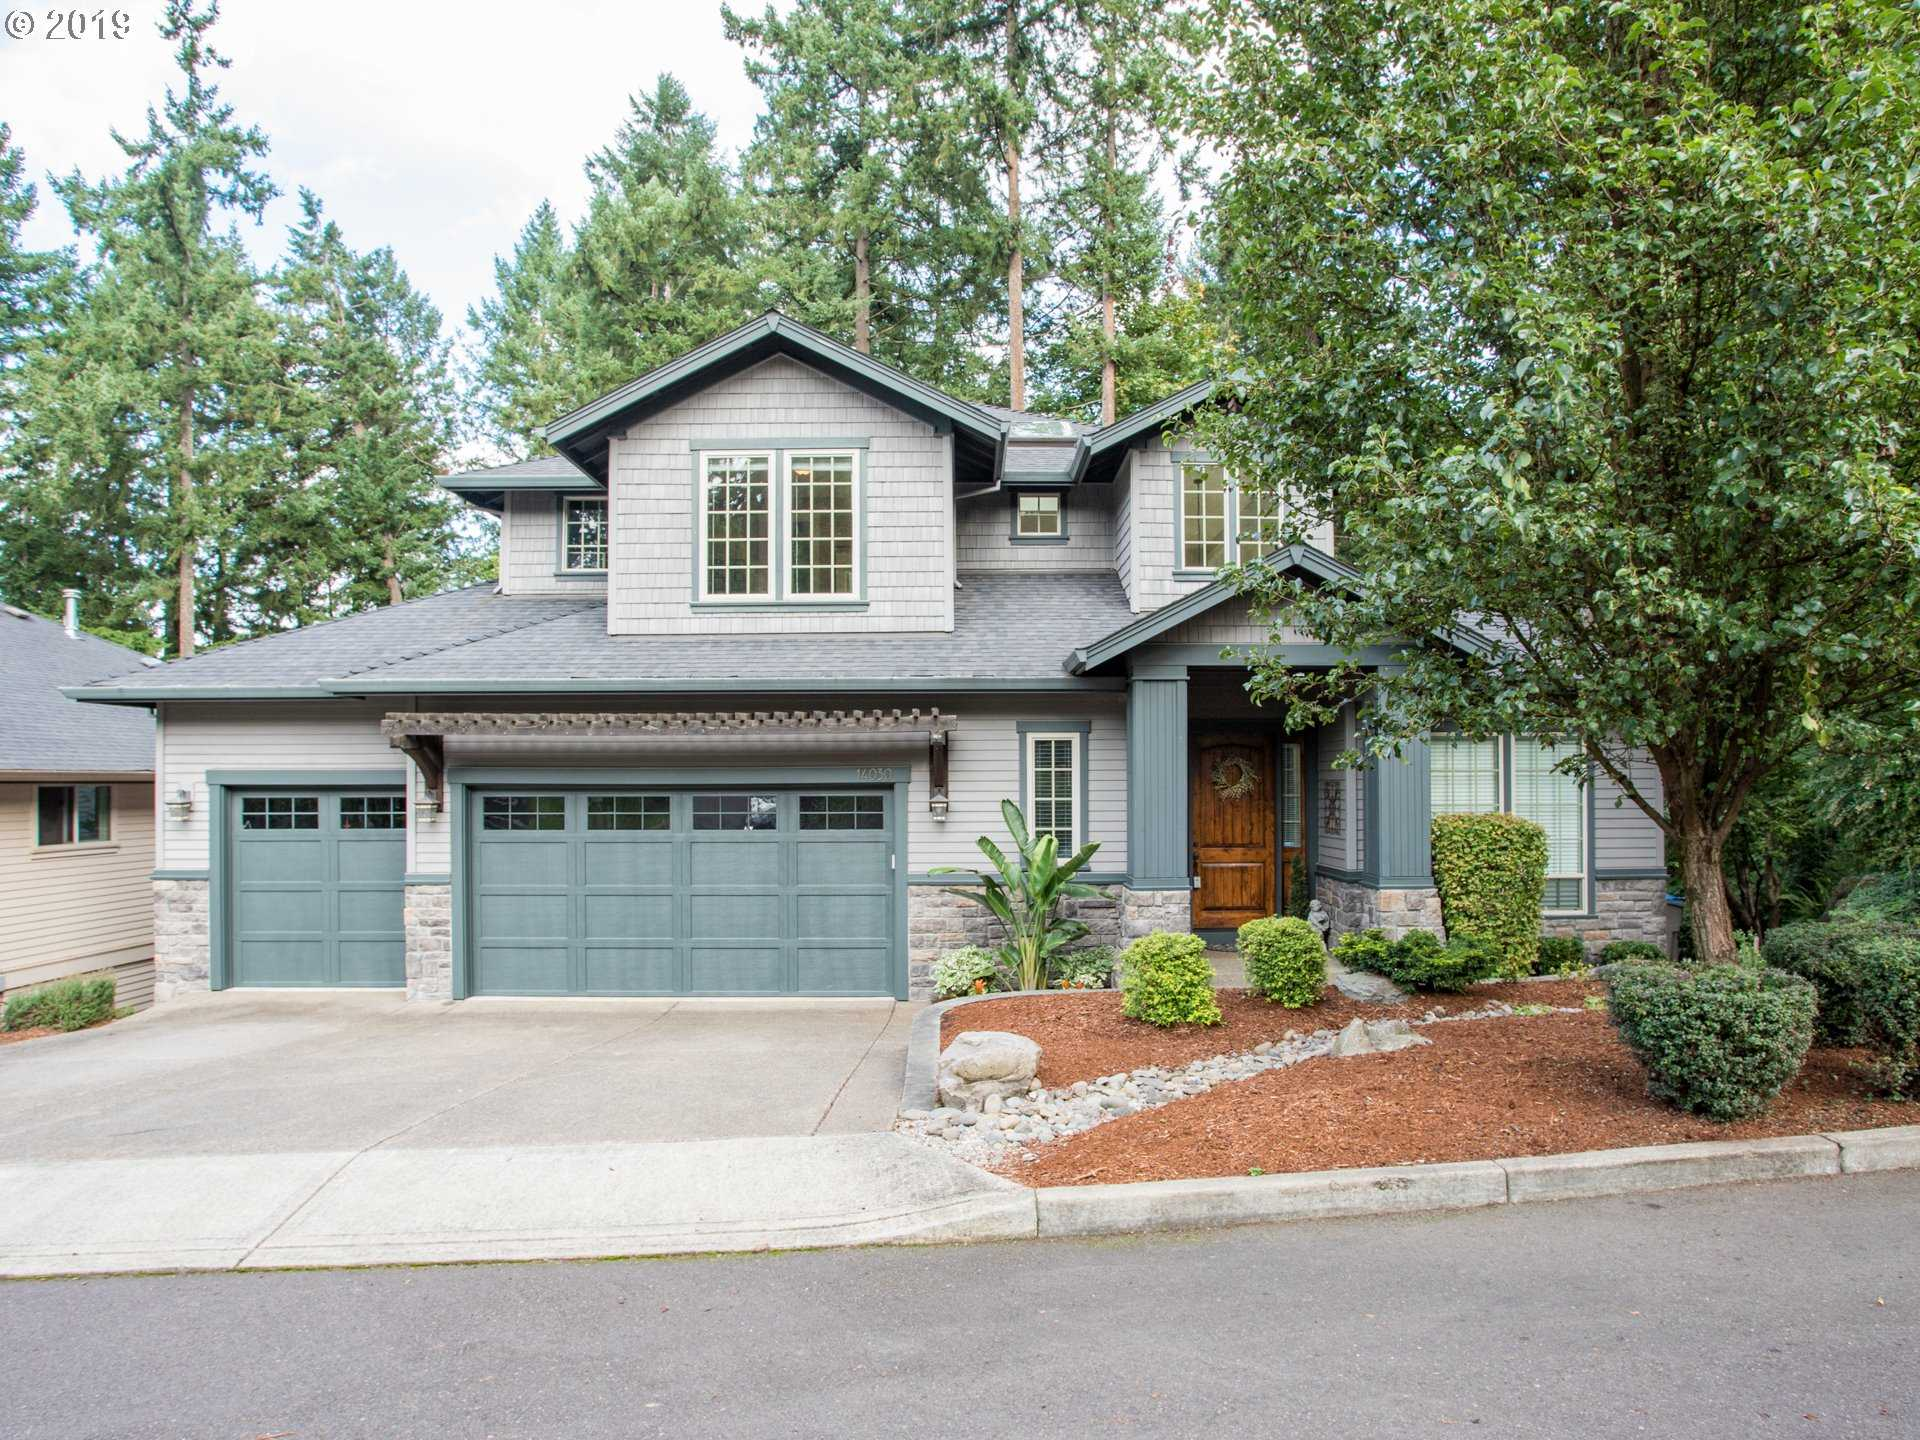 $849,900 - 5Br/4Ba -  for Sale in Tigard